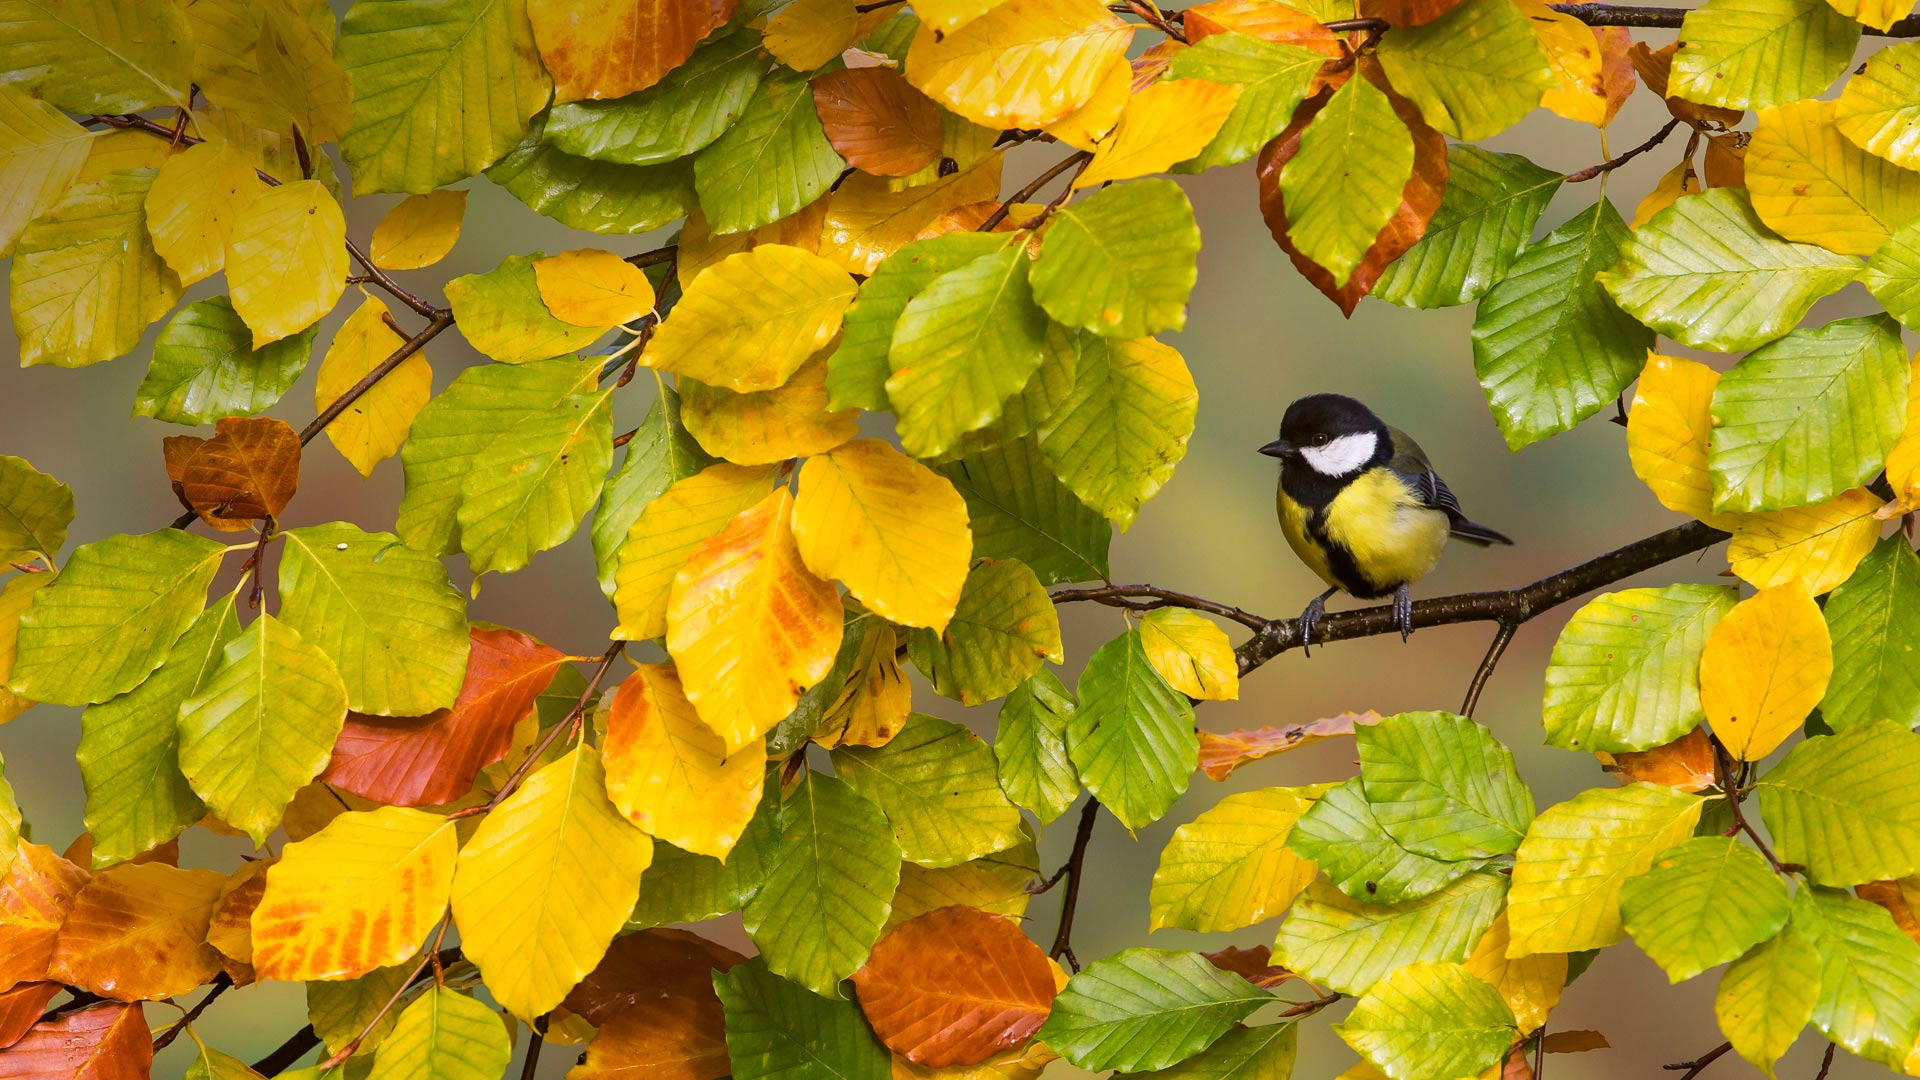 A great tit perched on a branch (© Frederic Desmette/Biosphoto/Minden Pictures)